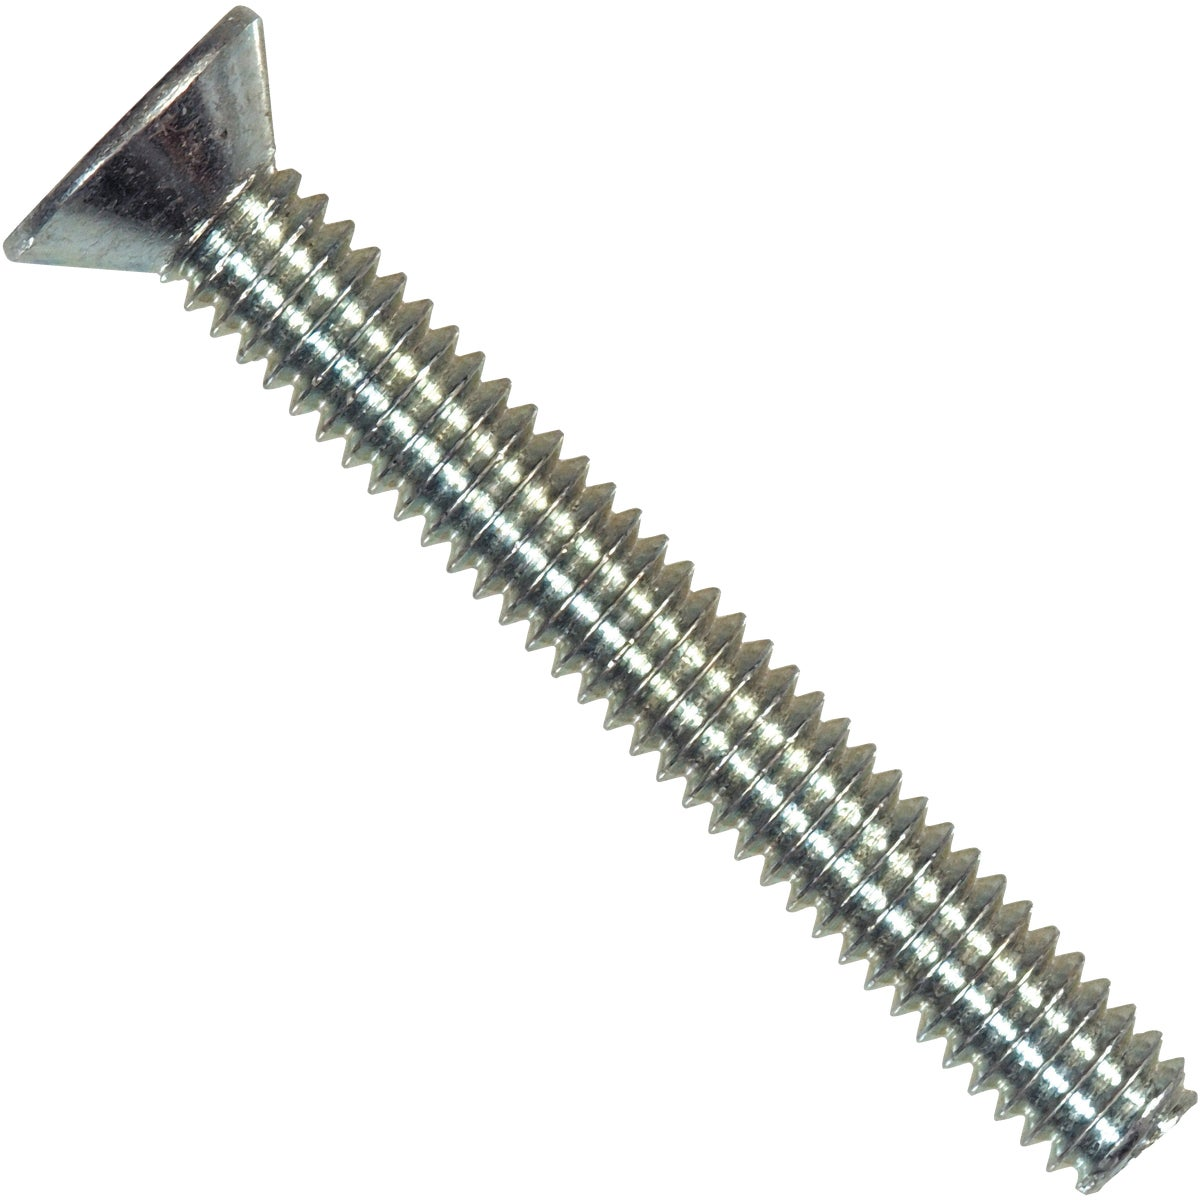 6-32X2 PH FH MACH SCREW - 101042 by Hillman Fastener